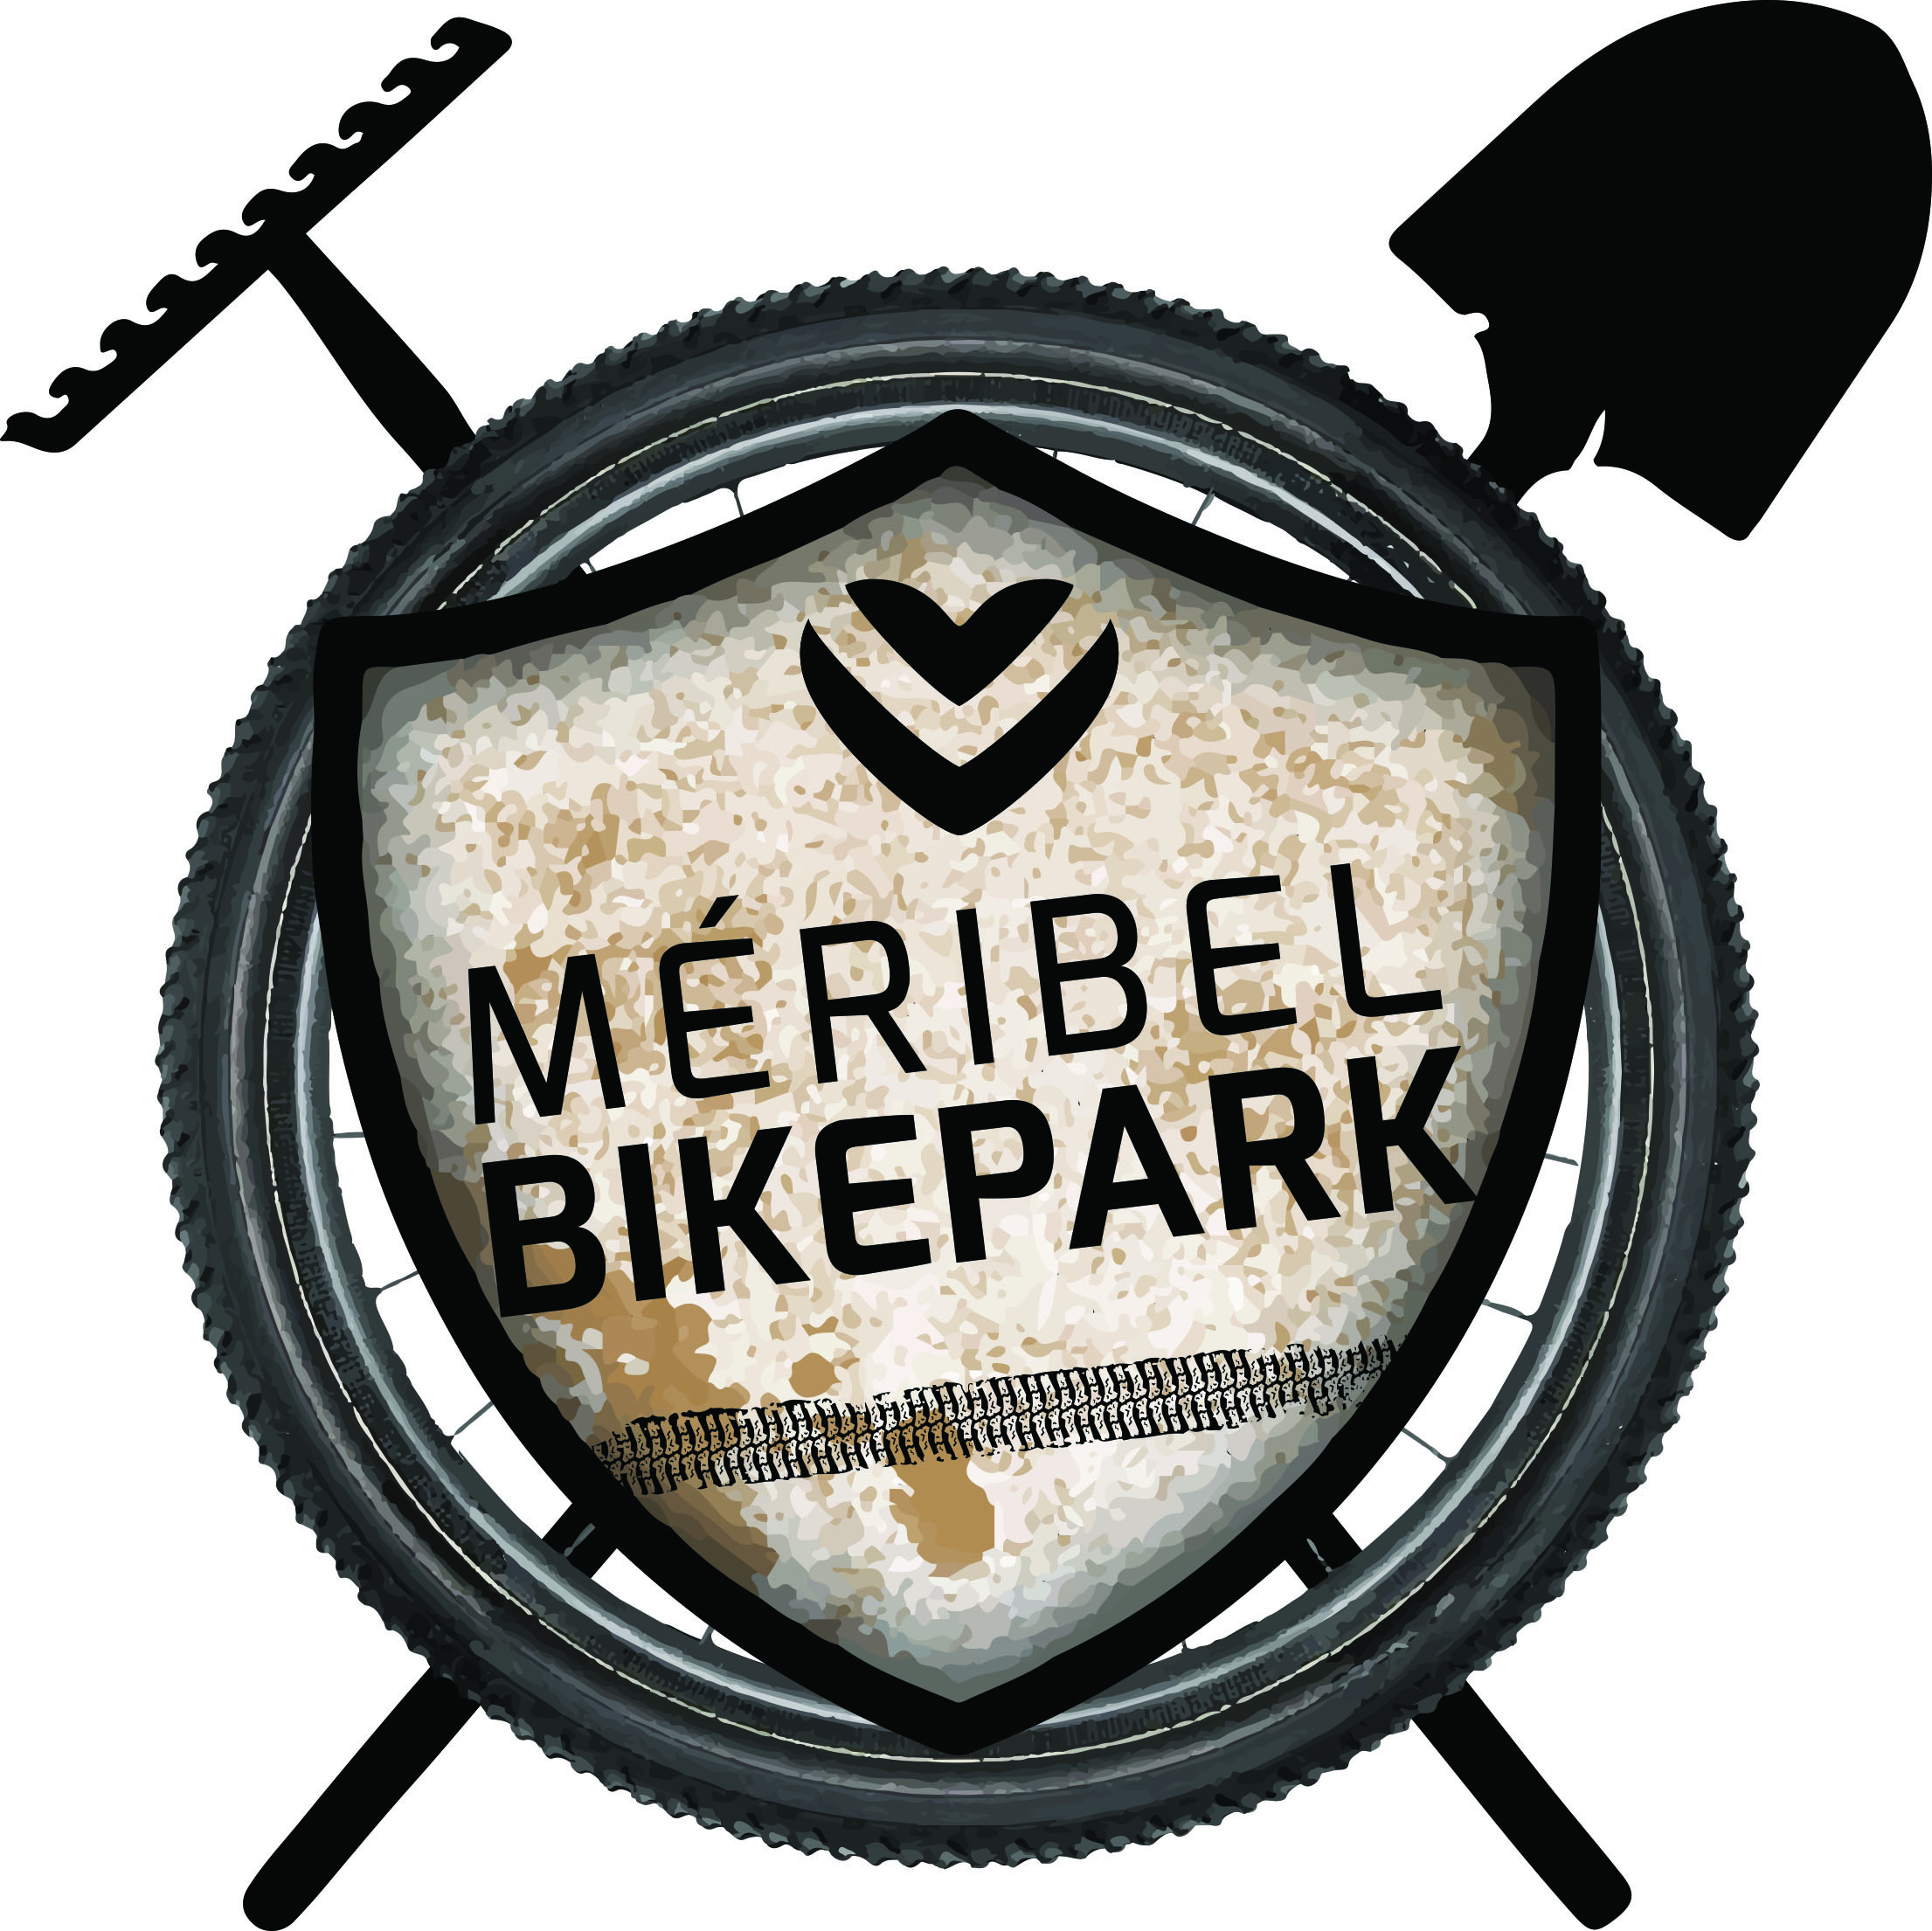 Méribel Bikepark